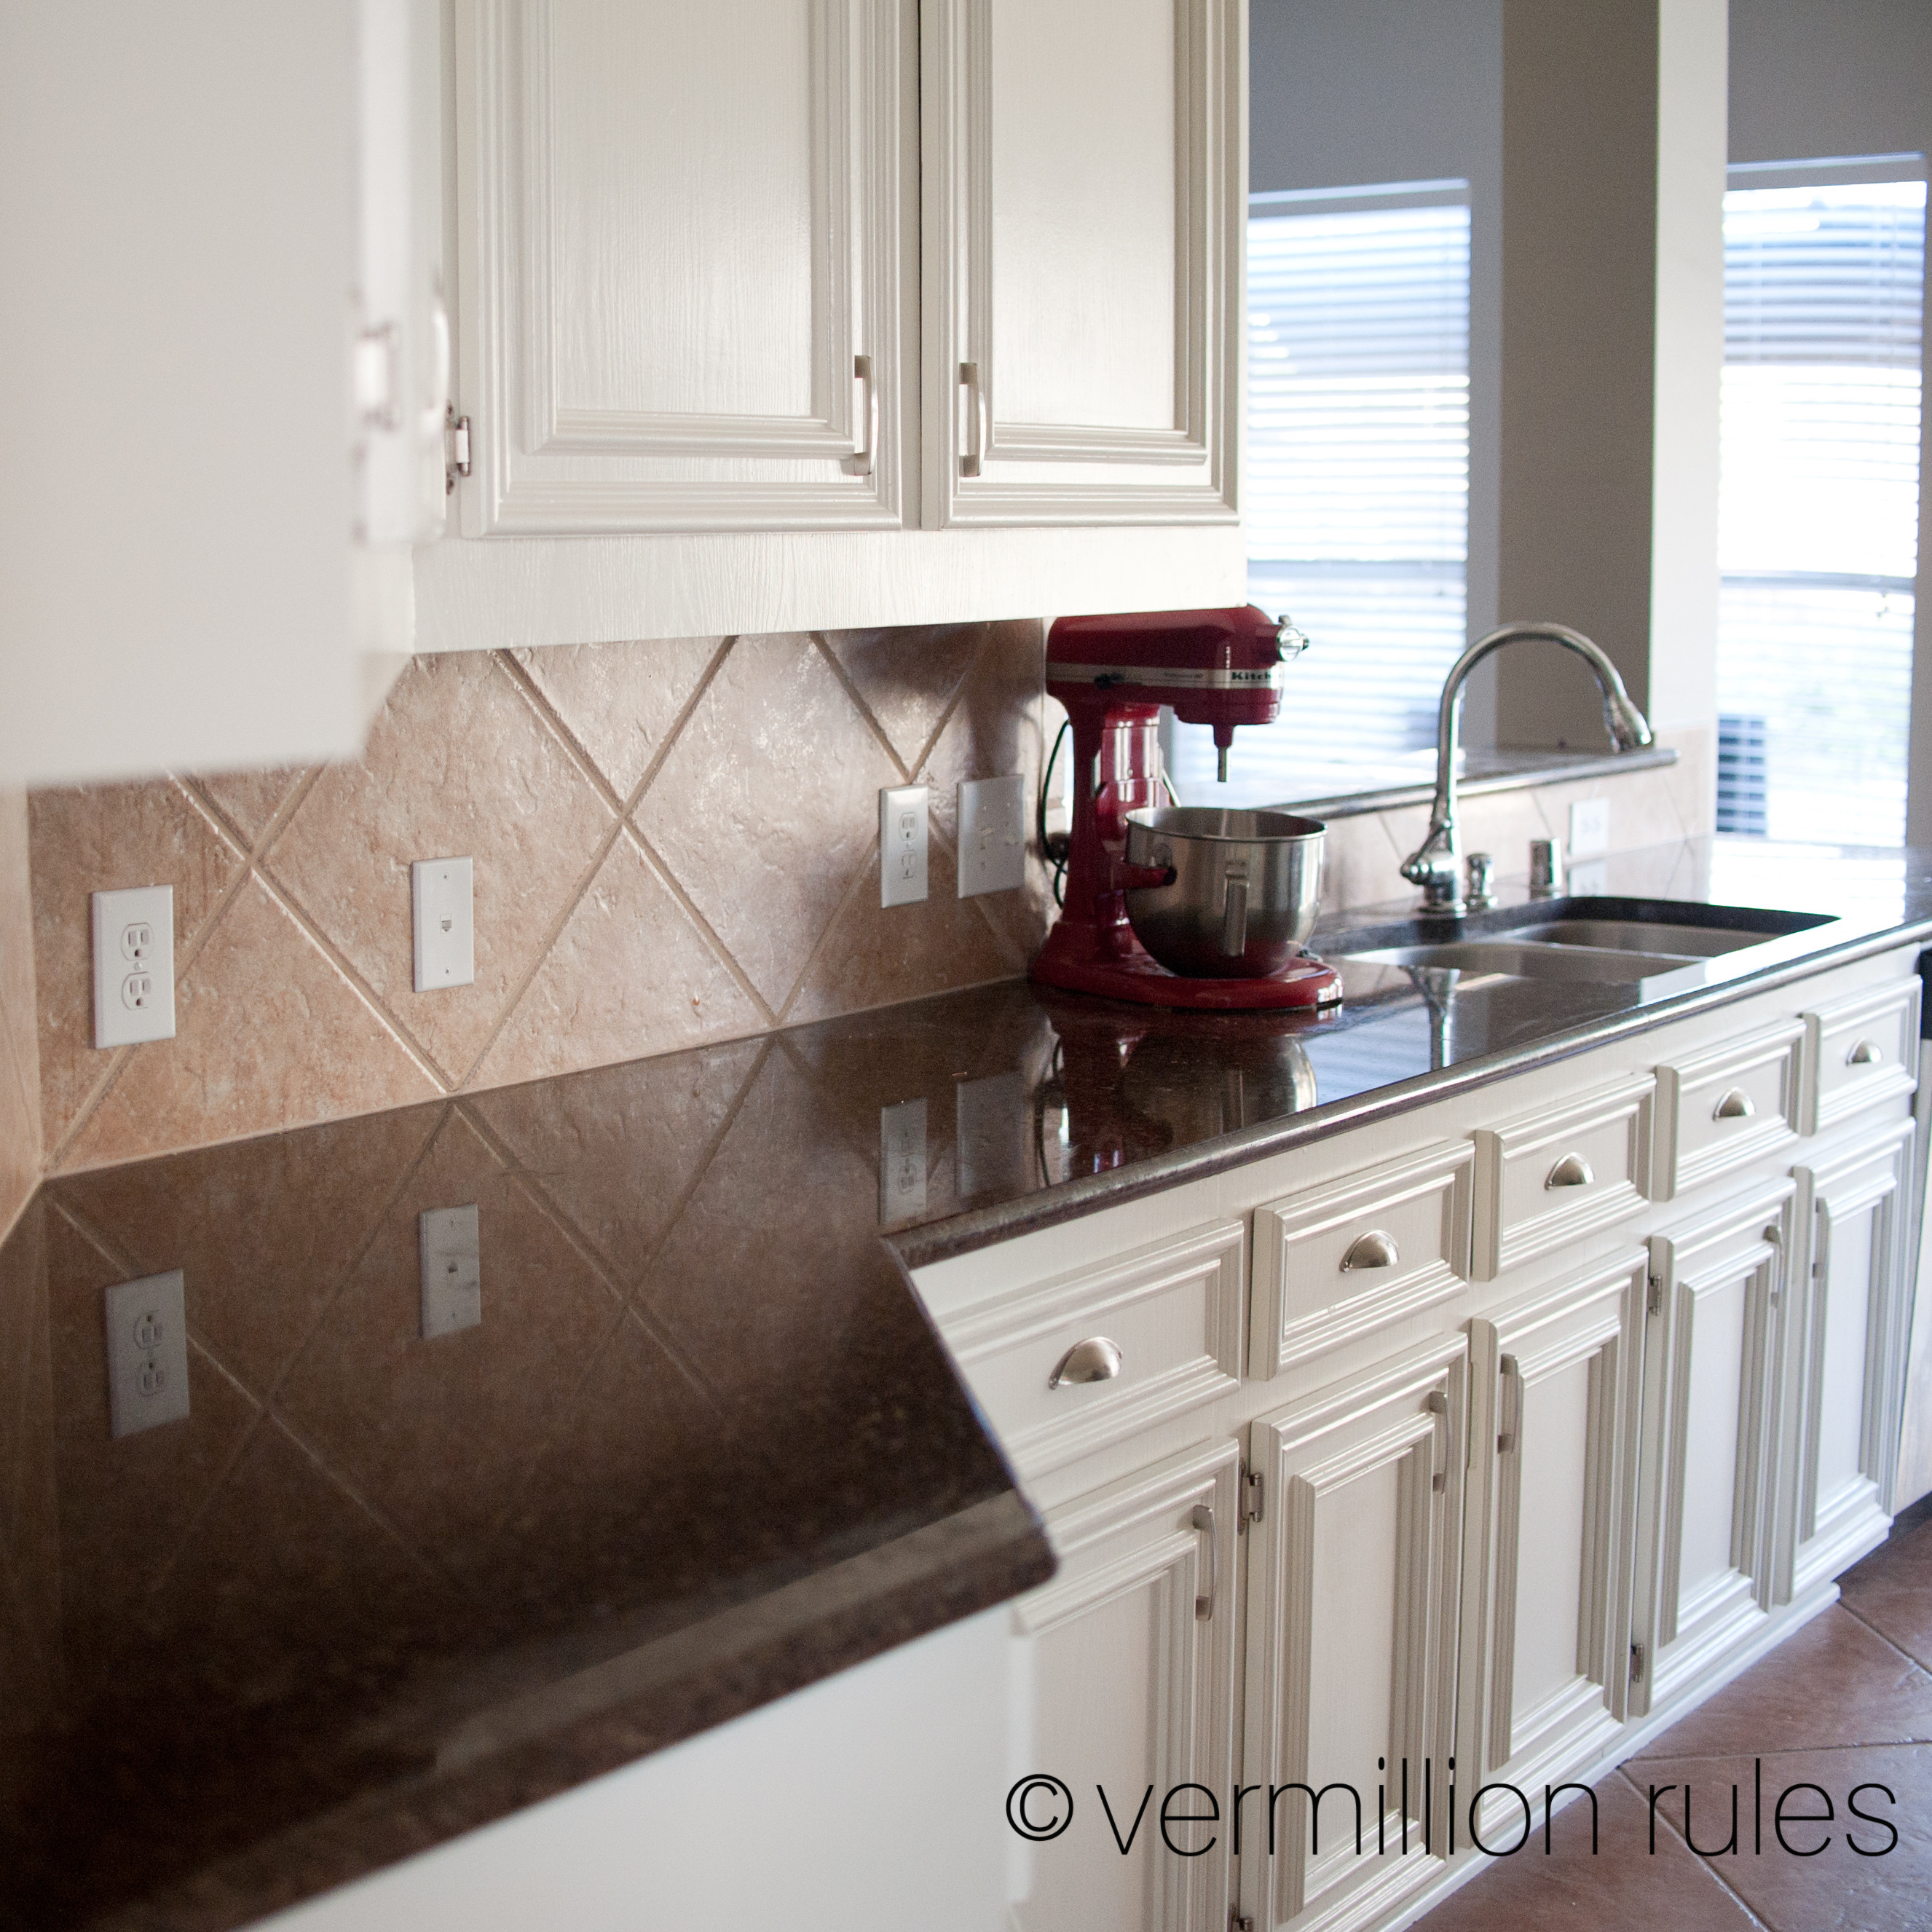 Best ideas about DIY Paint Kitchen Cabinets White . Save or Pin A DIY Project Painting Kitchen Cabinets Now.